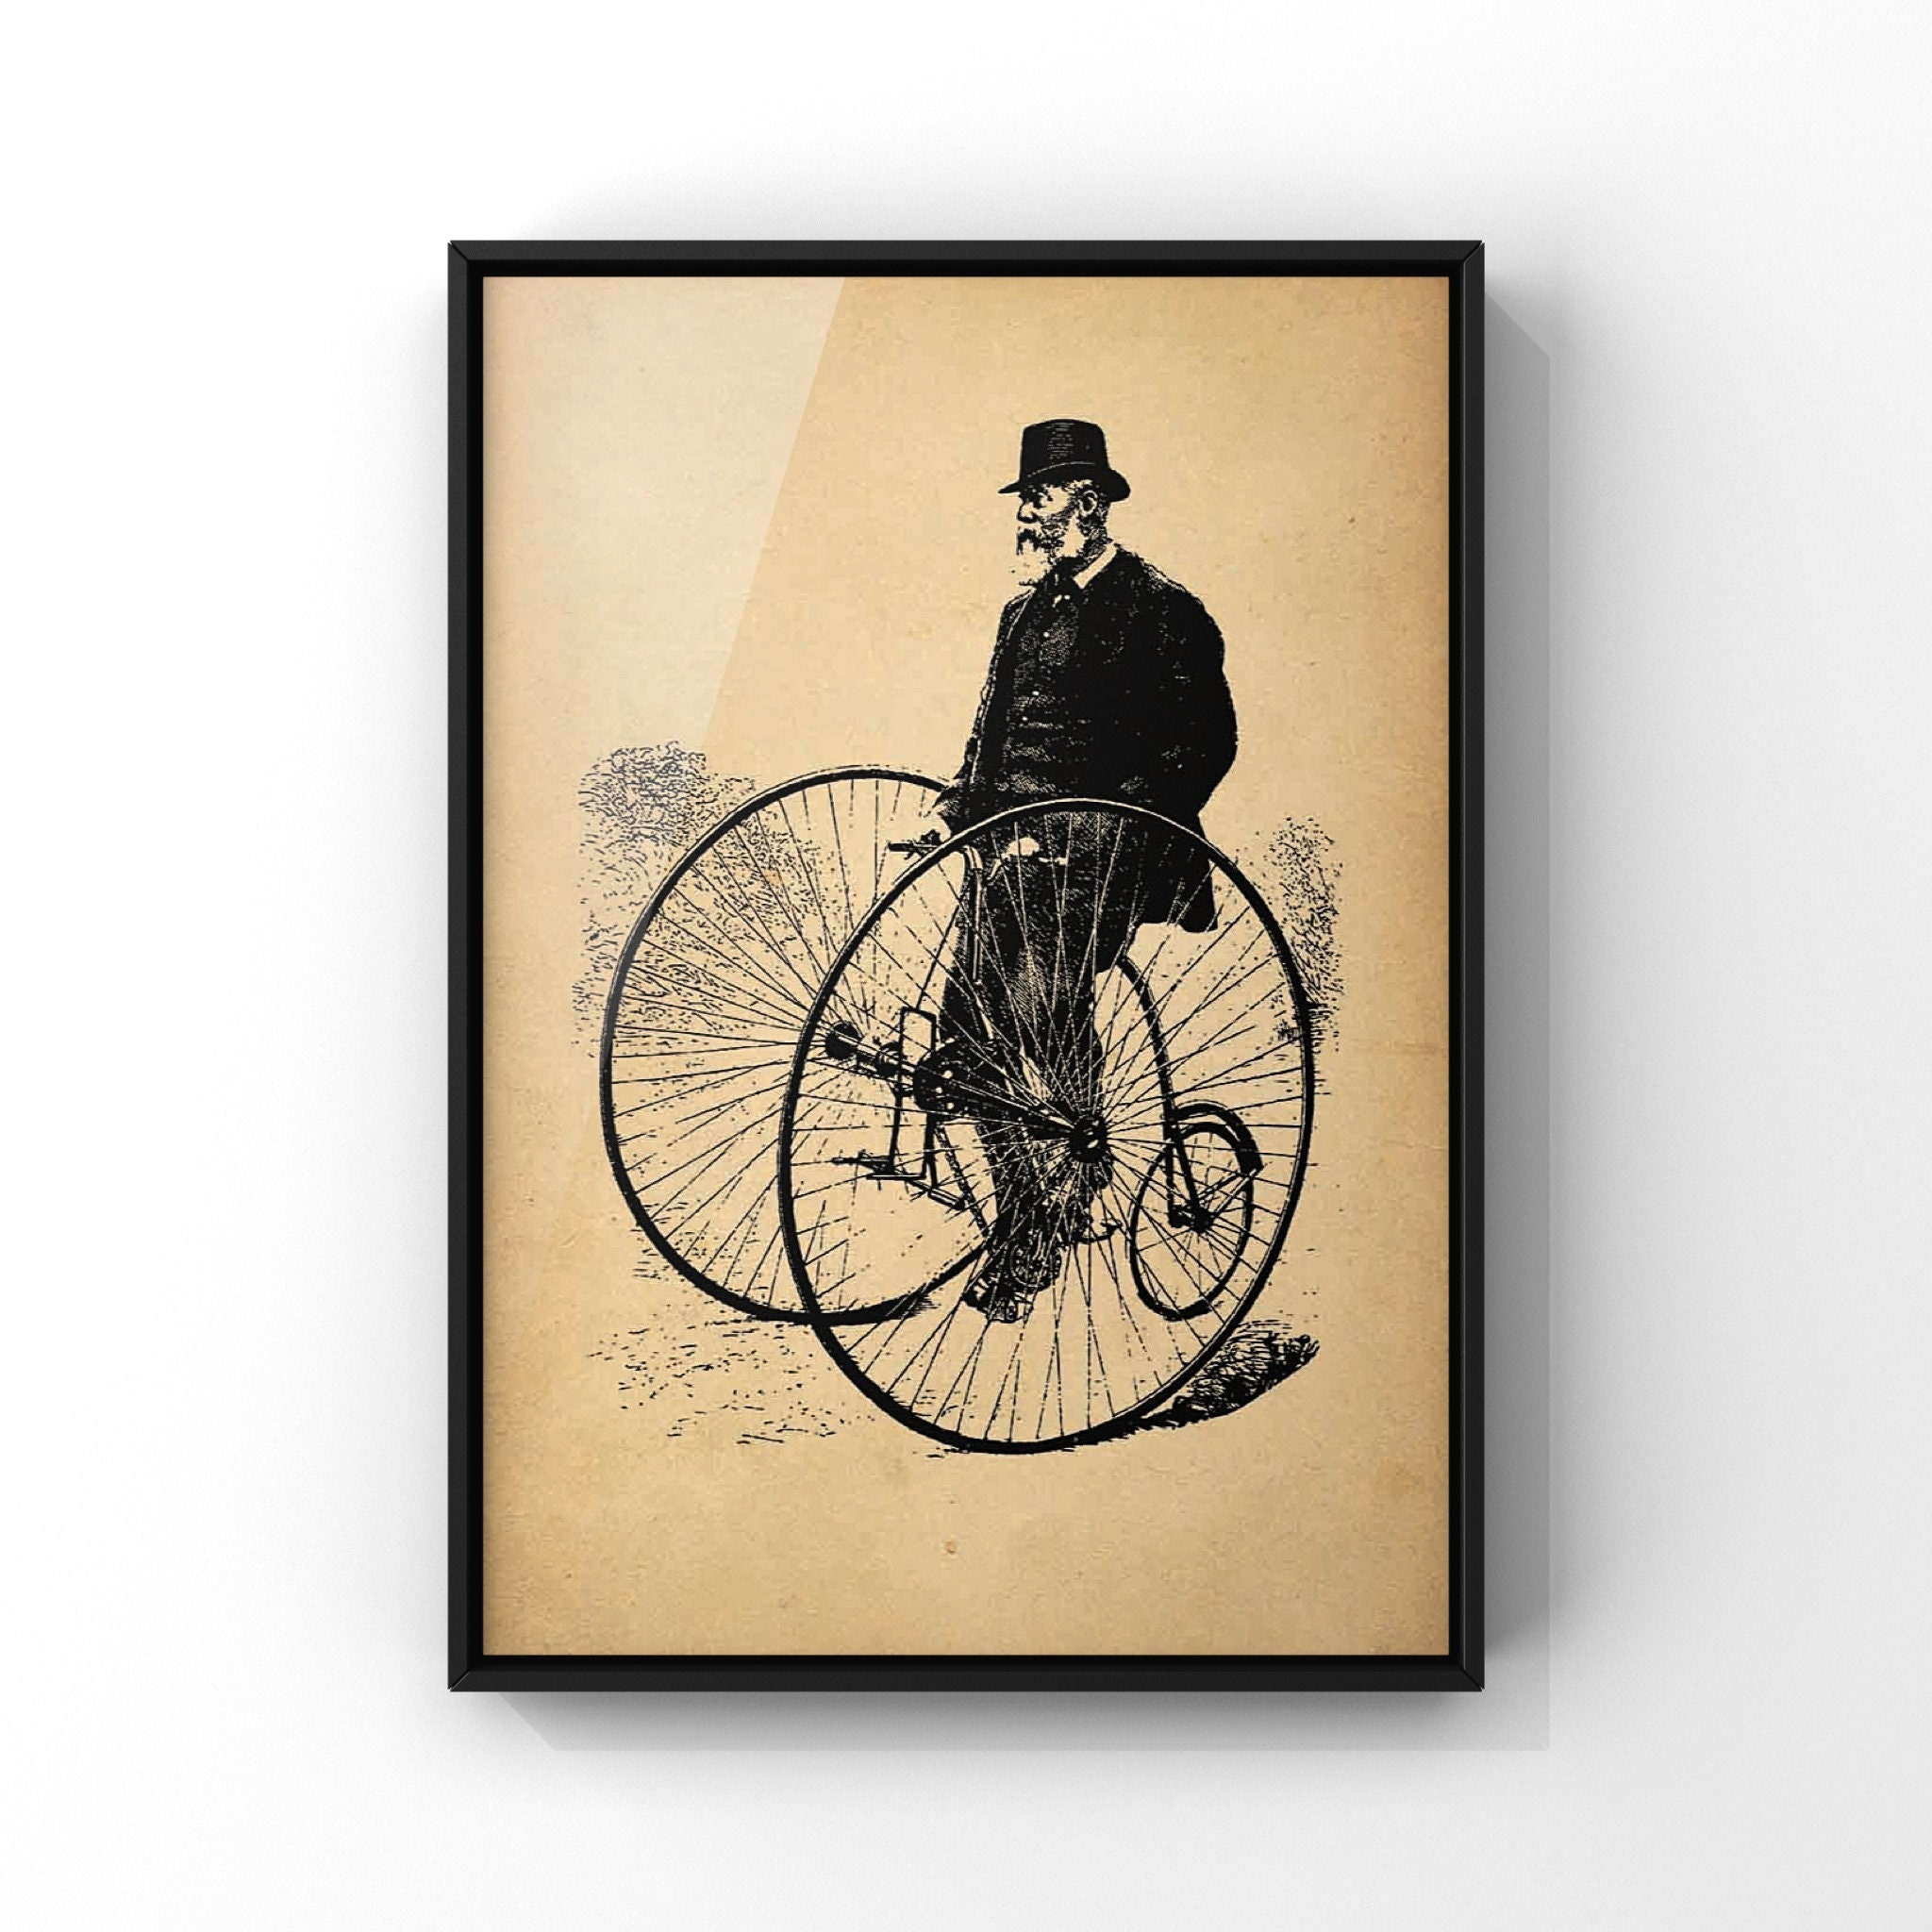 Antique Vintage Tricycle Print Man In Bowler Hat On Antique Tricycle Steampunk Wall Art Old Style Cycling Paper Print